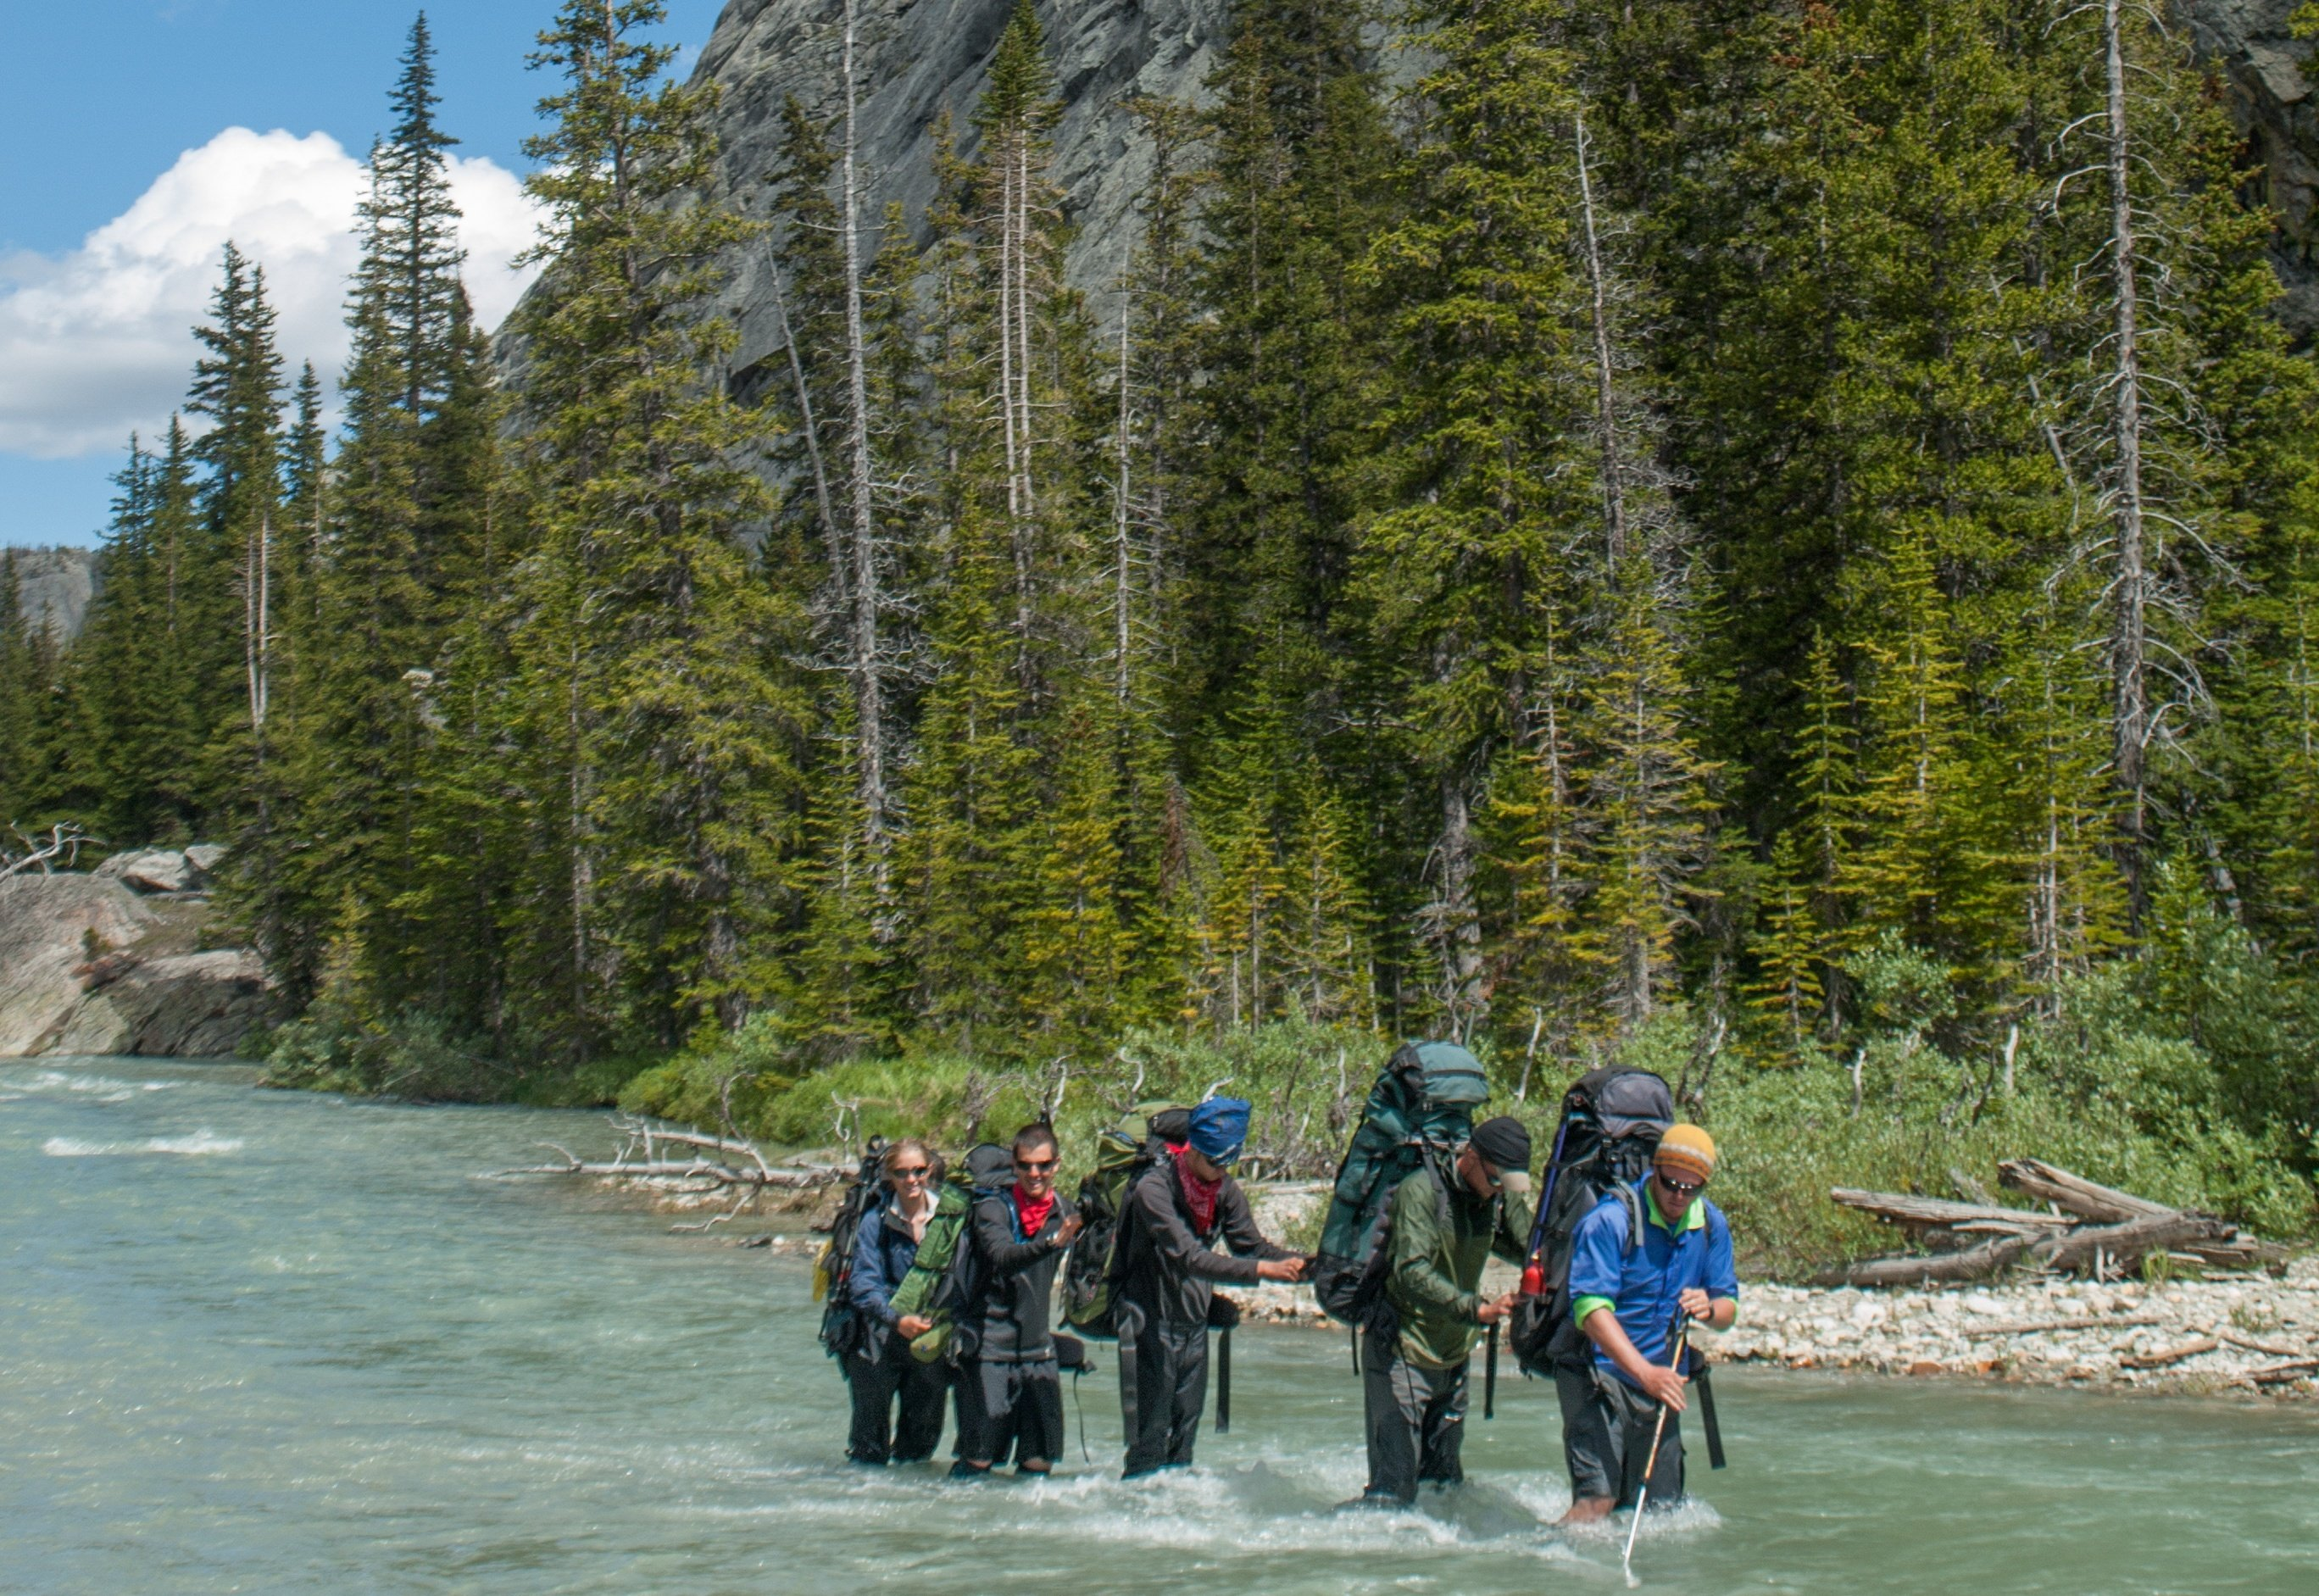 NOLS and the Wilderness Risk Management Conference: 25 Years of Facing Challenges Together